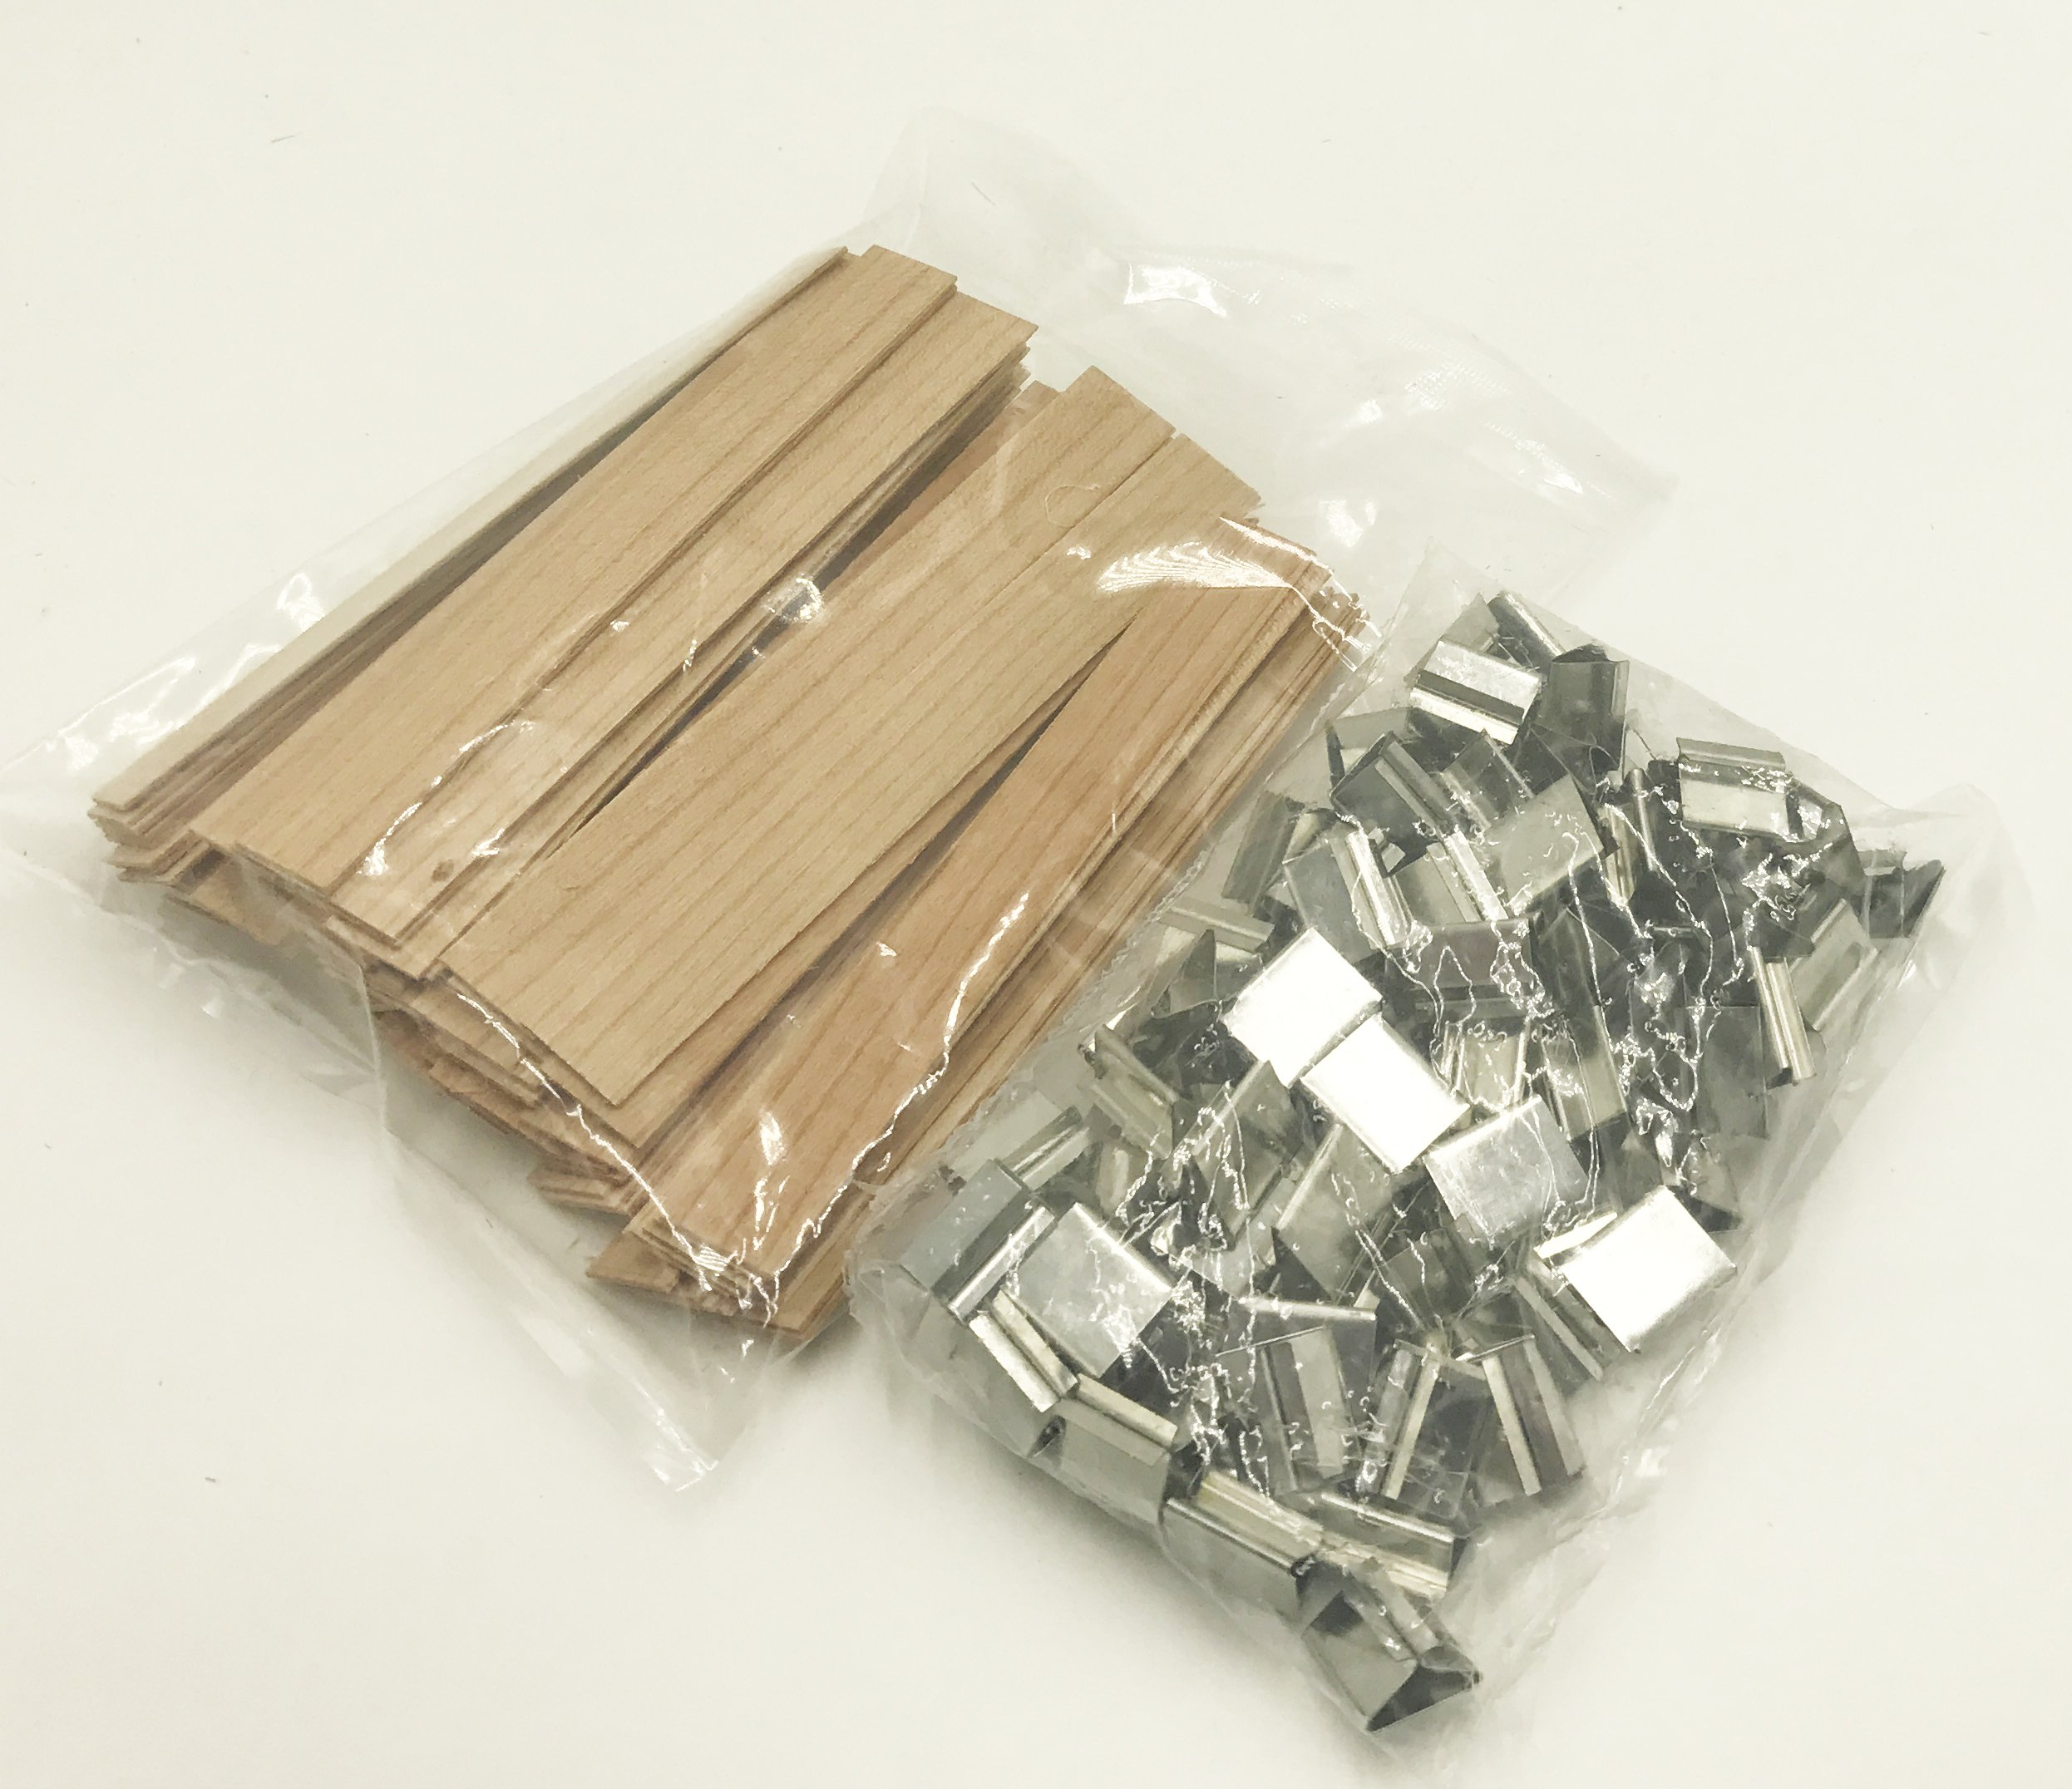 Candlewic 100 pk of Larger Cherry Wooden Wicks 5/8'' Width 5. 25'' length (. 04 thickness)